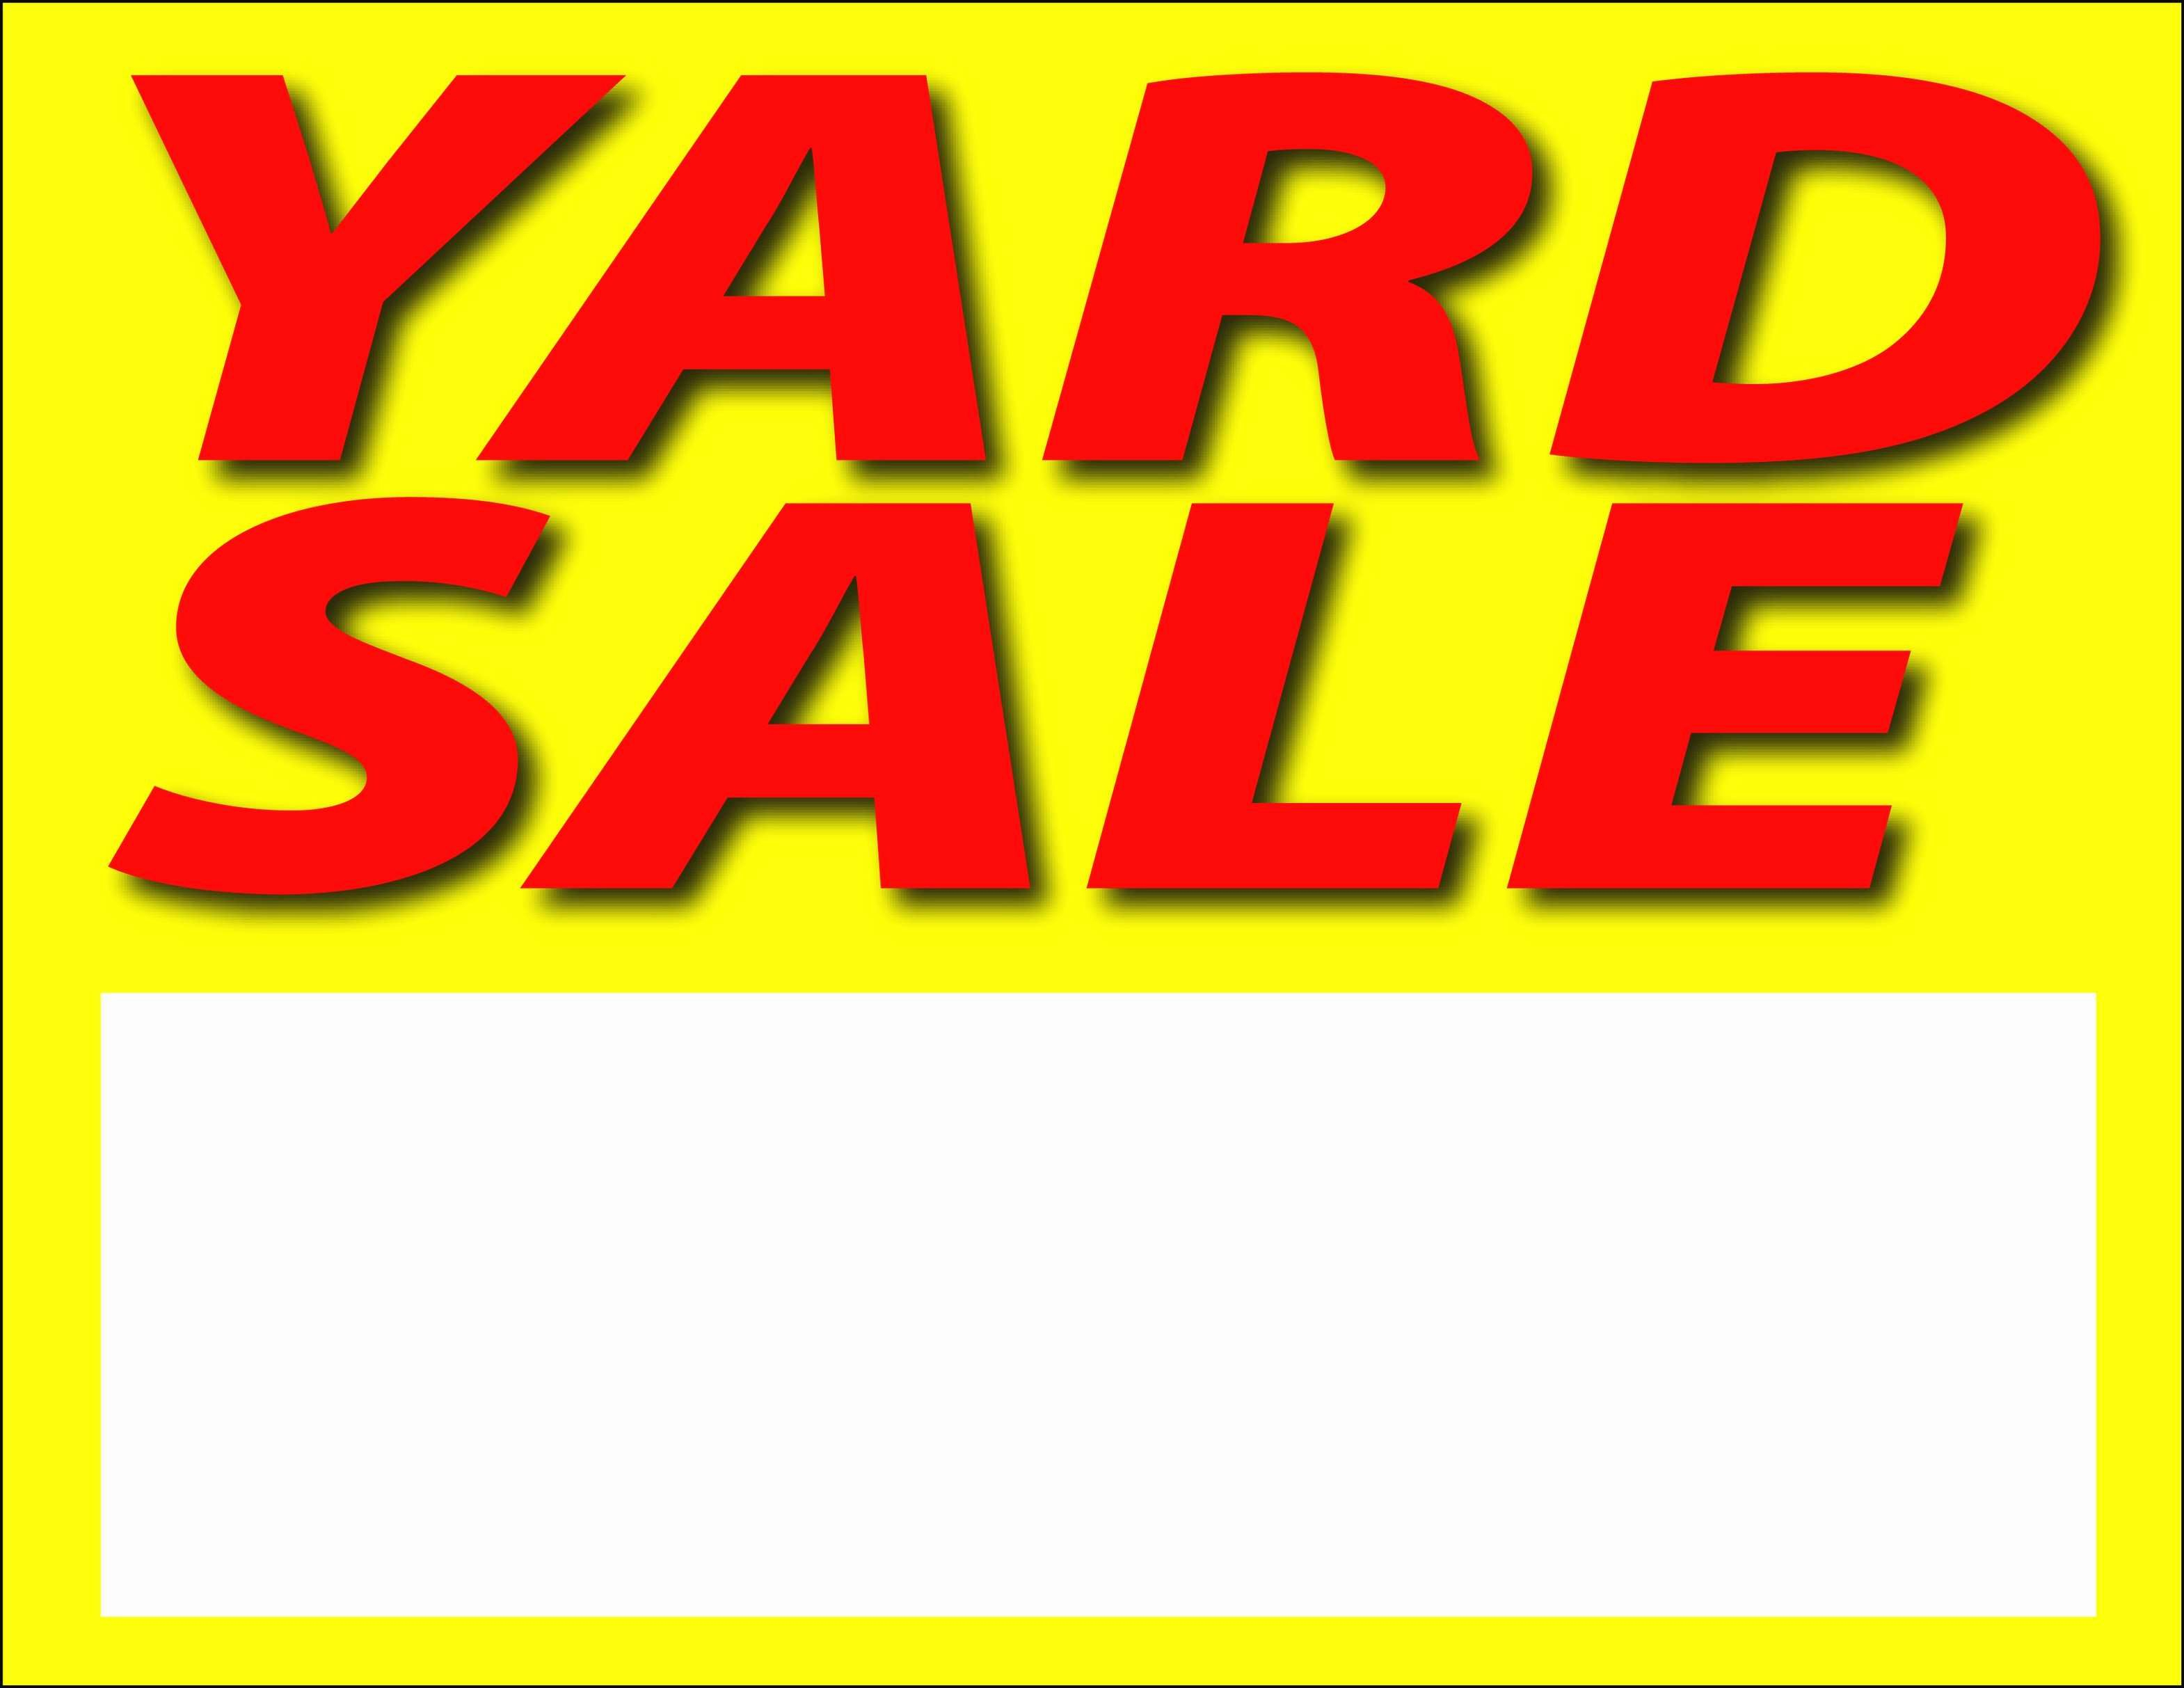 008 Yard Sale Signs Templates Sign Template Beautiful Examples - Free Printable Yard Sale Signs